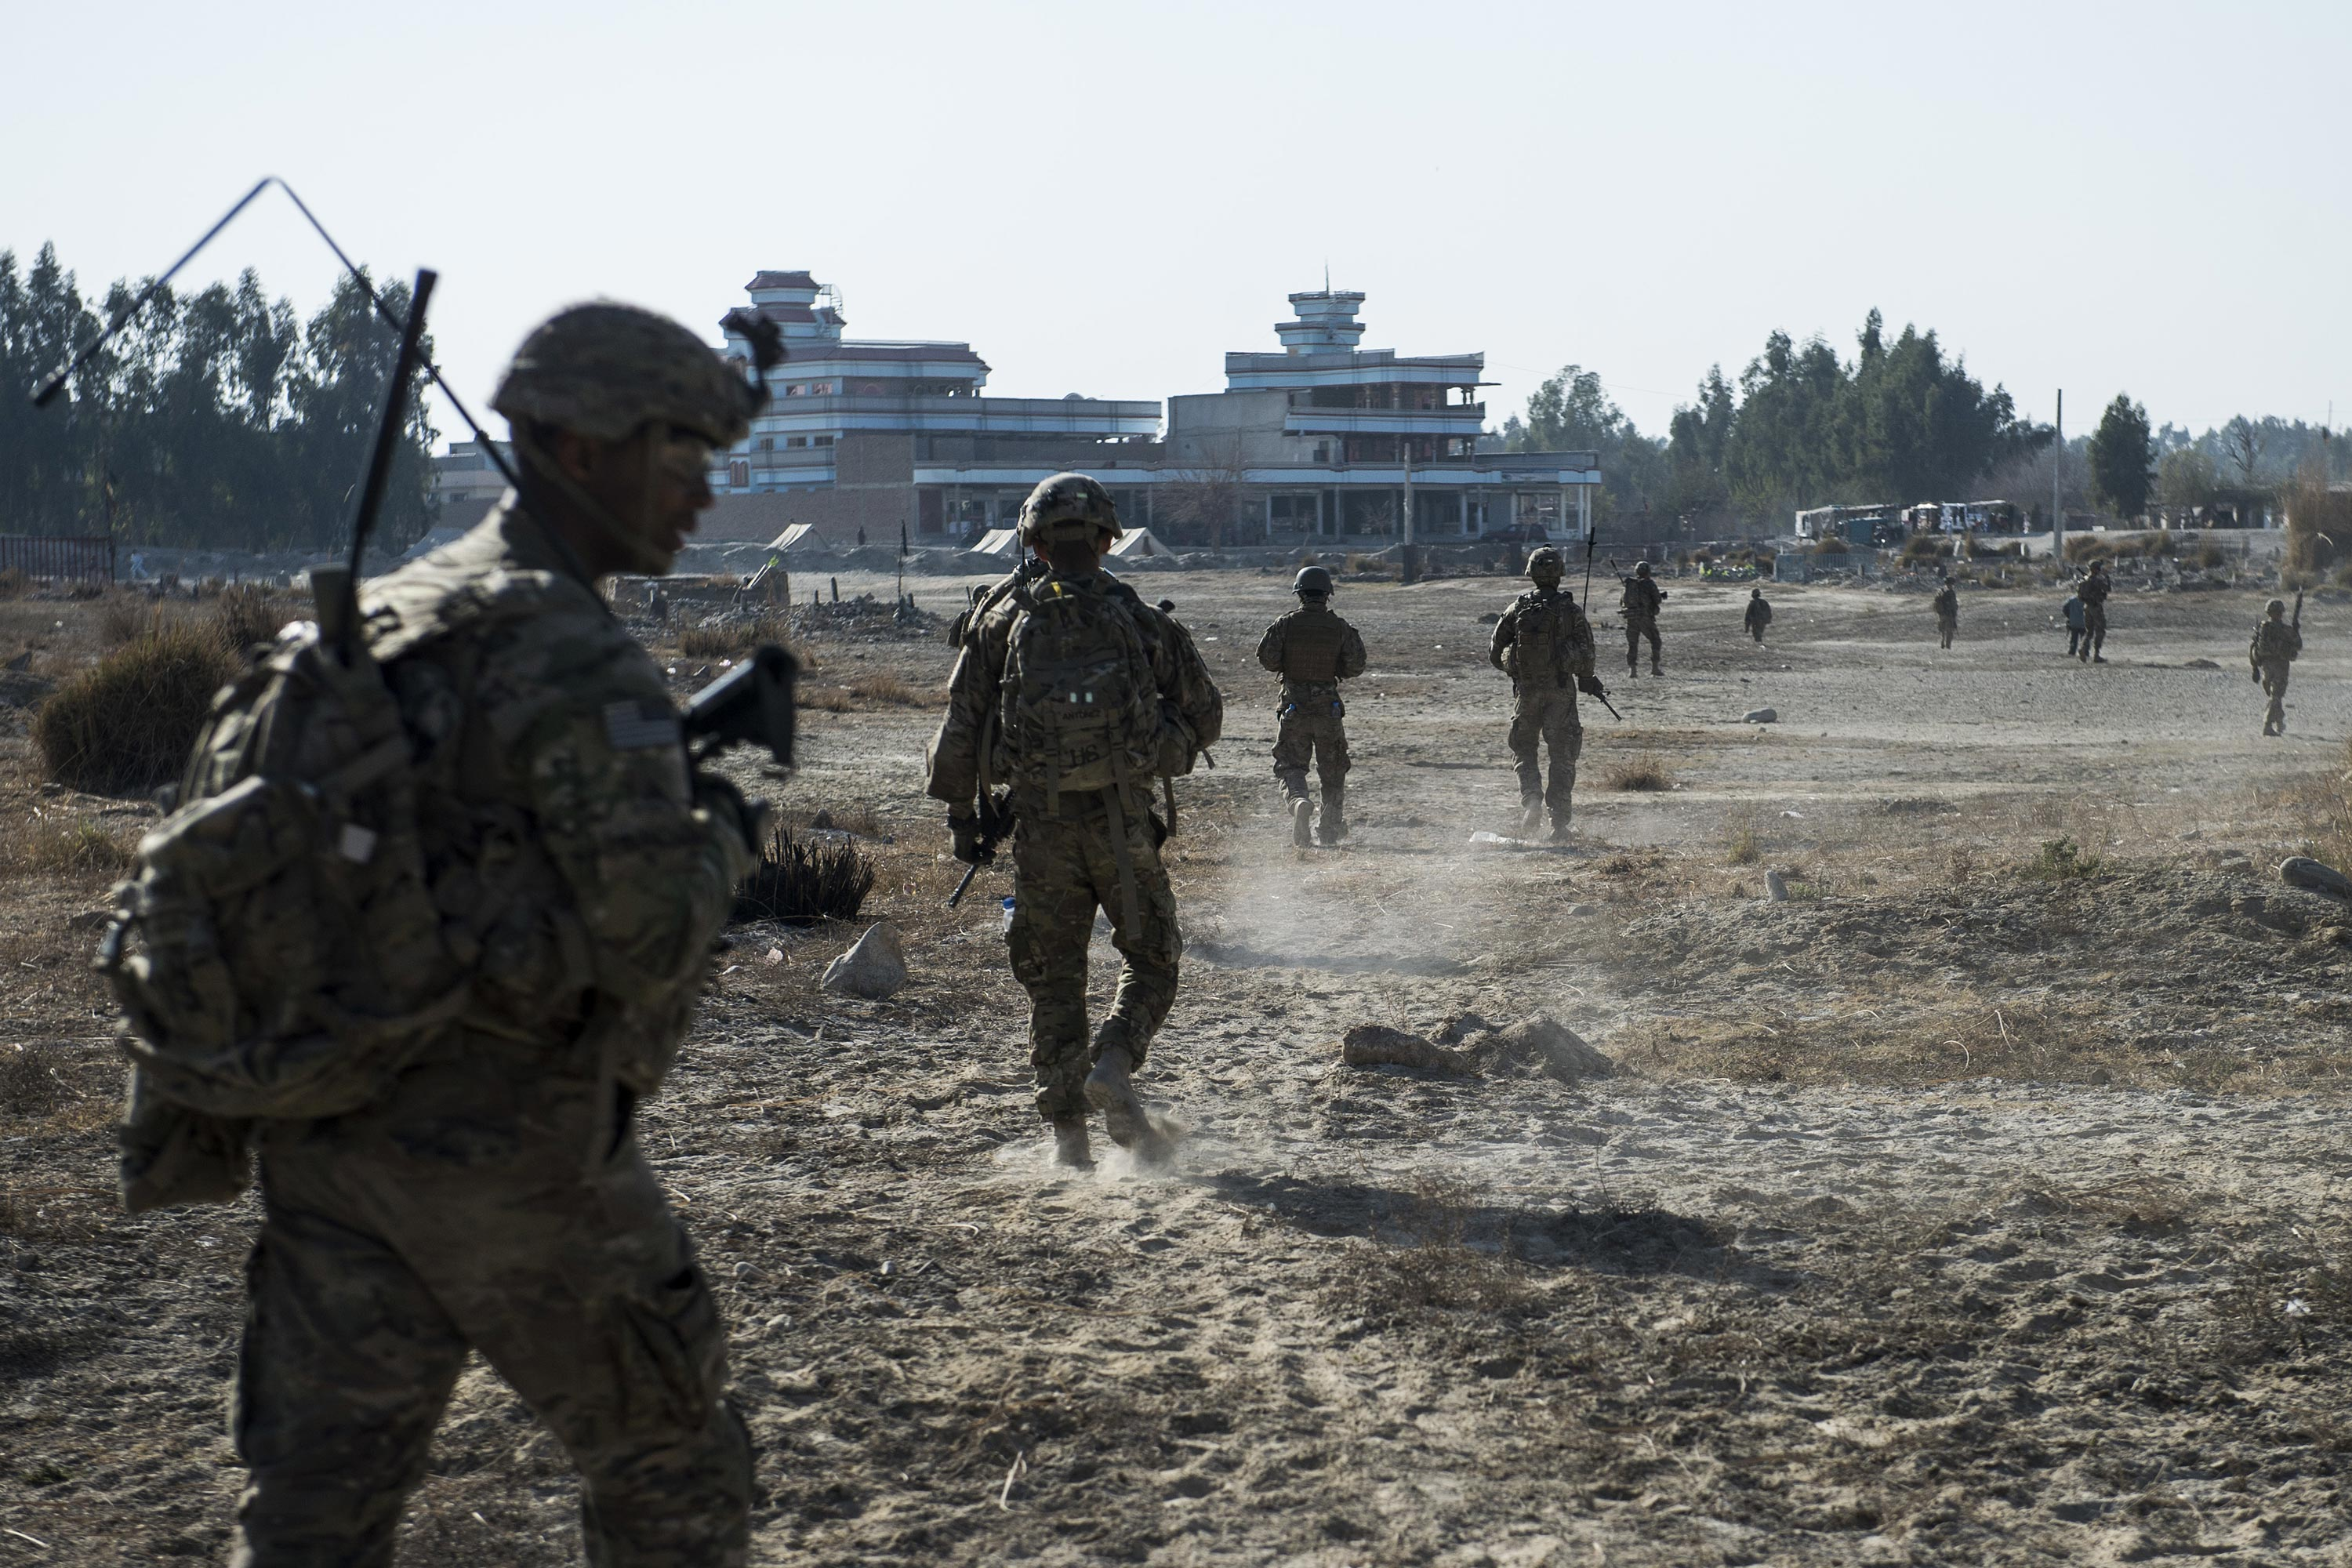 Account Of Gunfight With Taliban Sheds Light On American